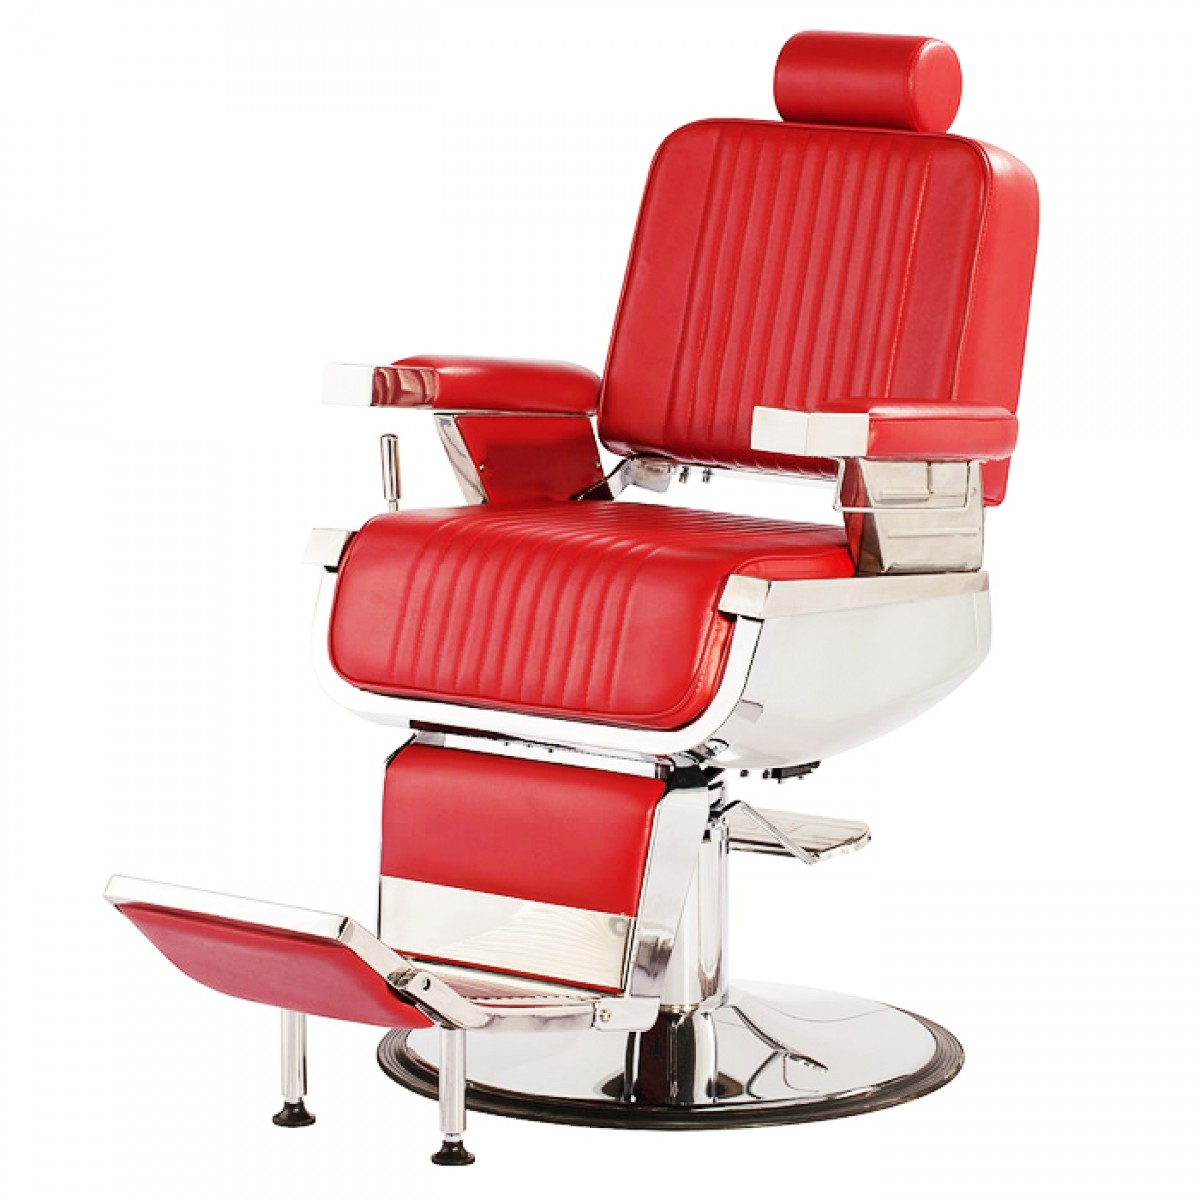 """CONTINENTAL"" Barber Chair in Red, Red Barber Chairs"